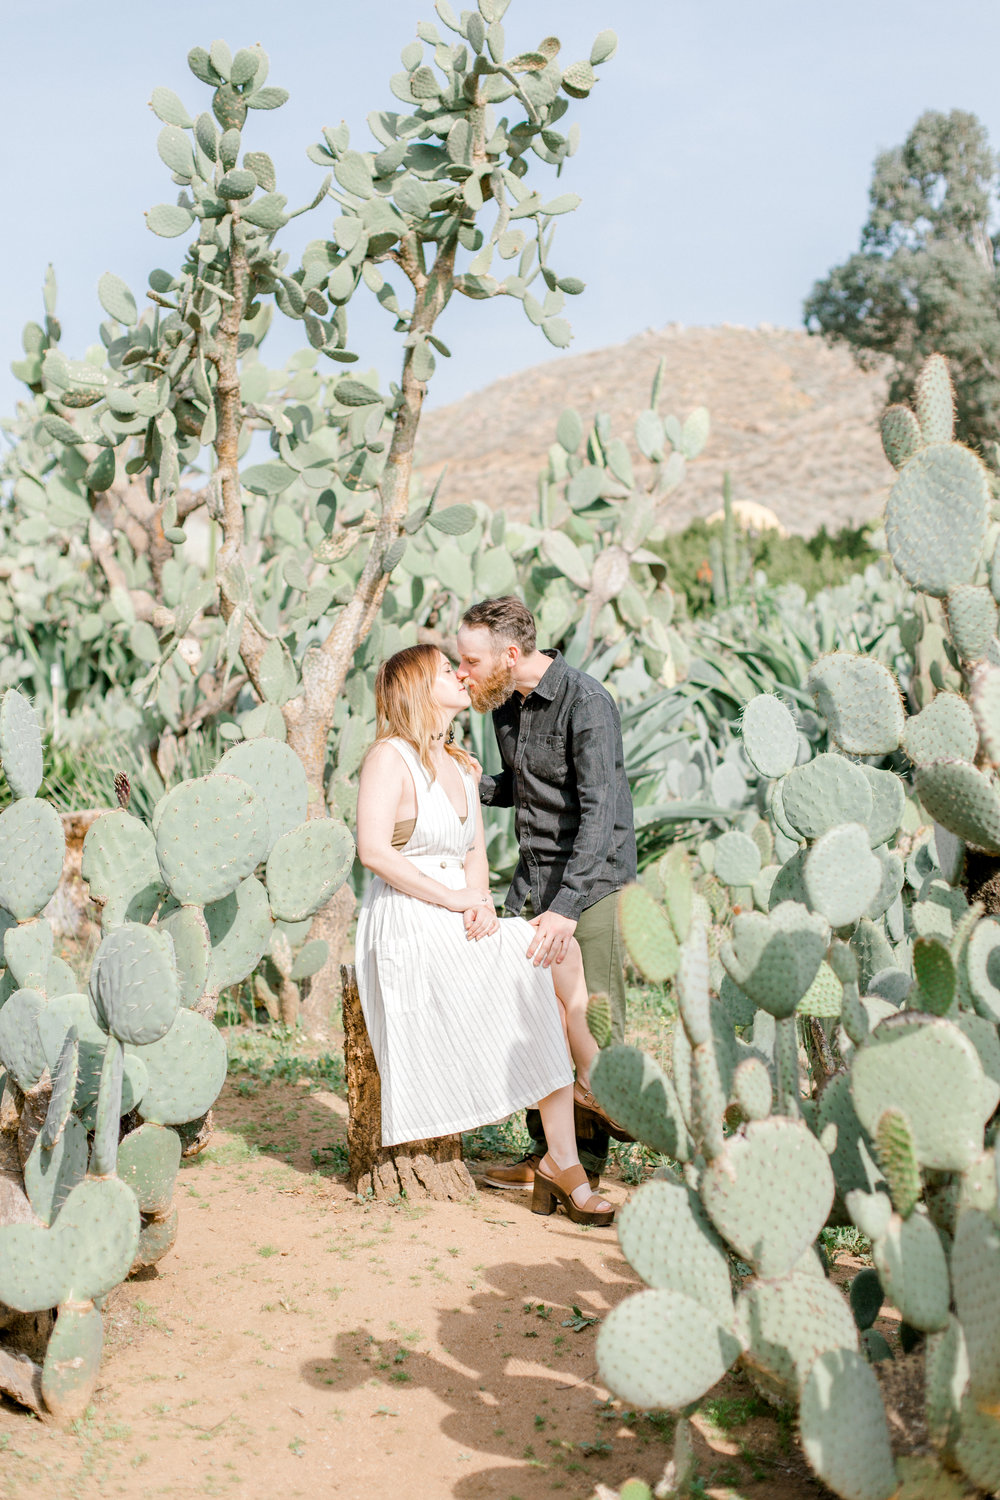 jessica sgubin photography atlanta portrait photographer cacti garden engagement family couple wedding joshua tree wedding elopement-3.jpg